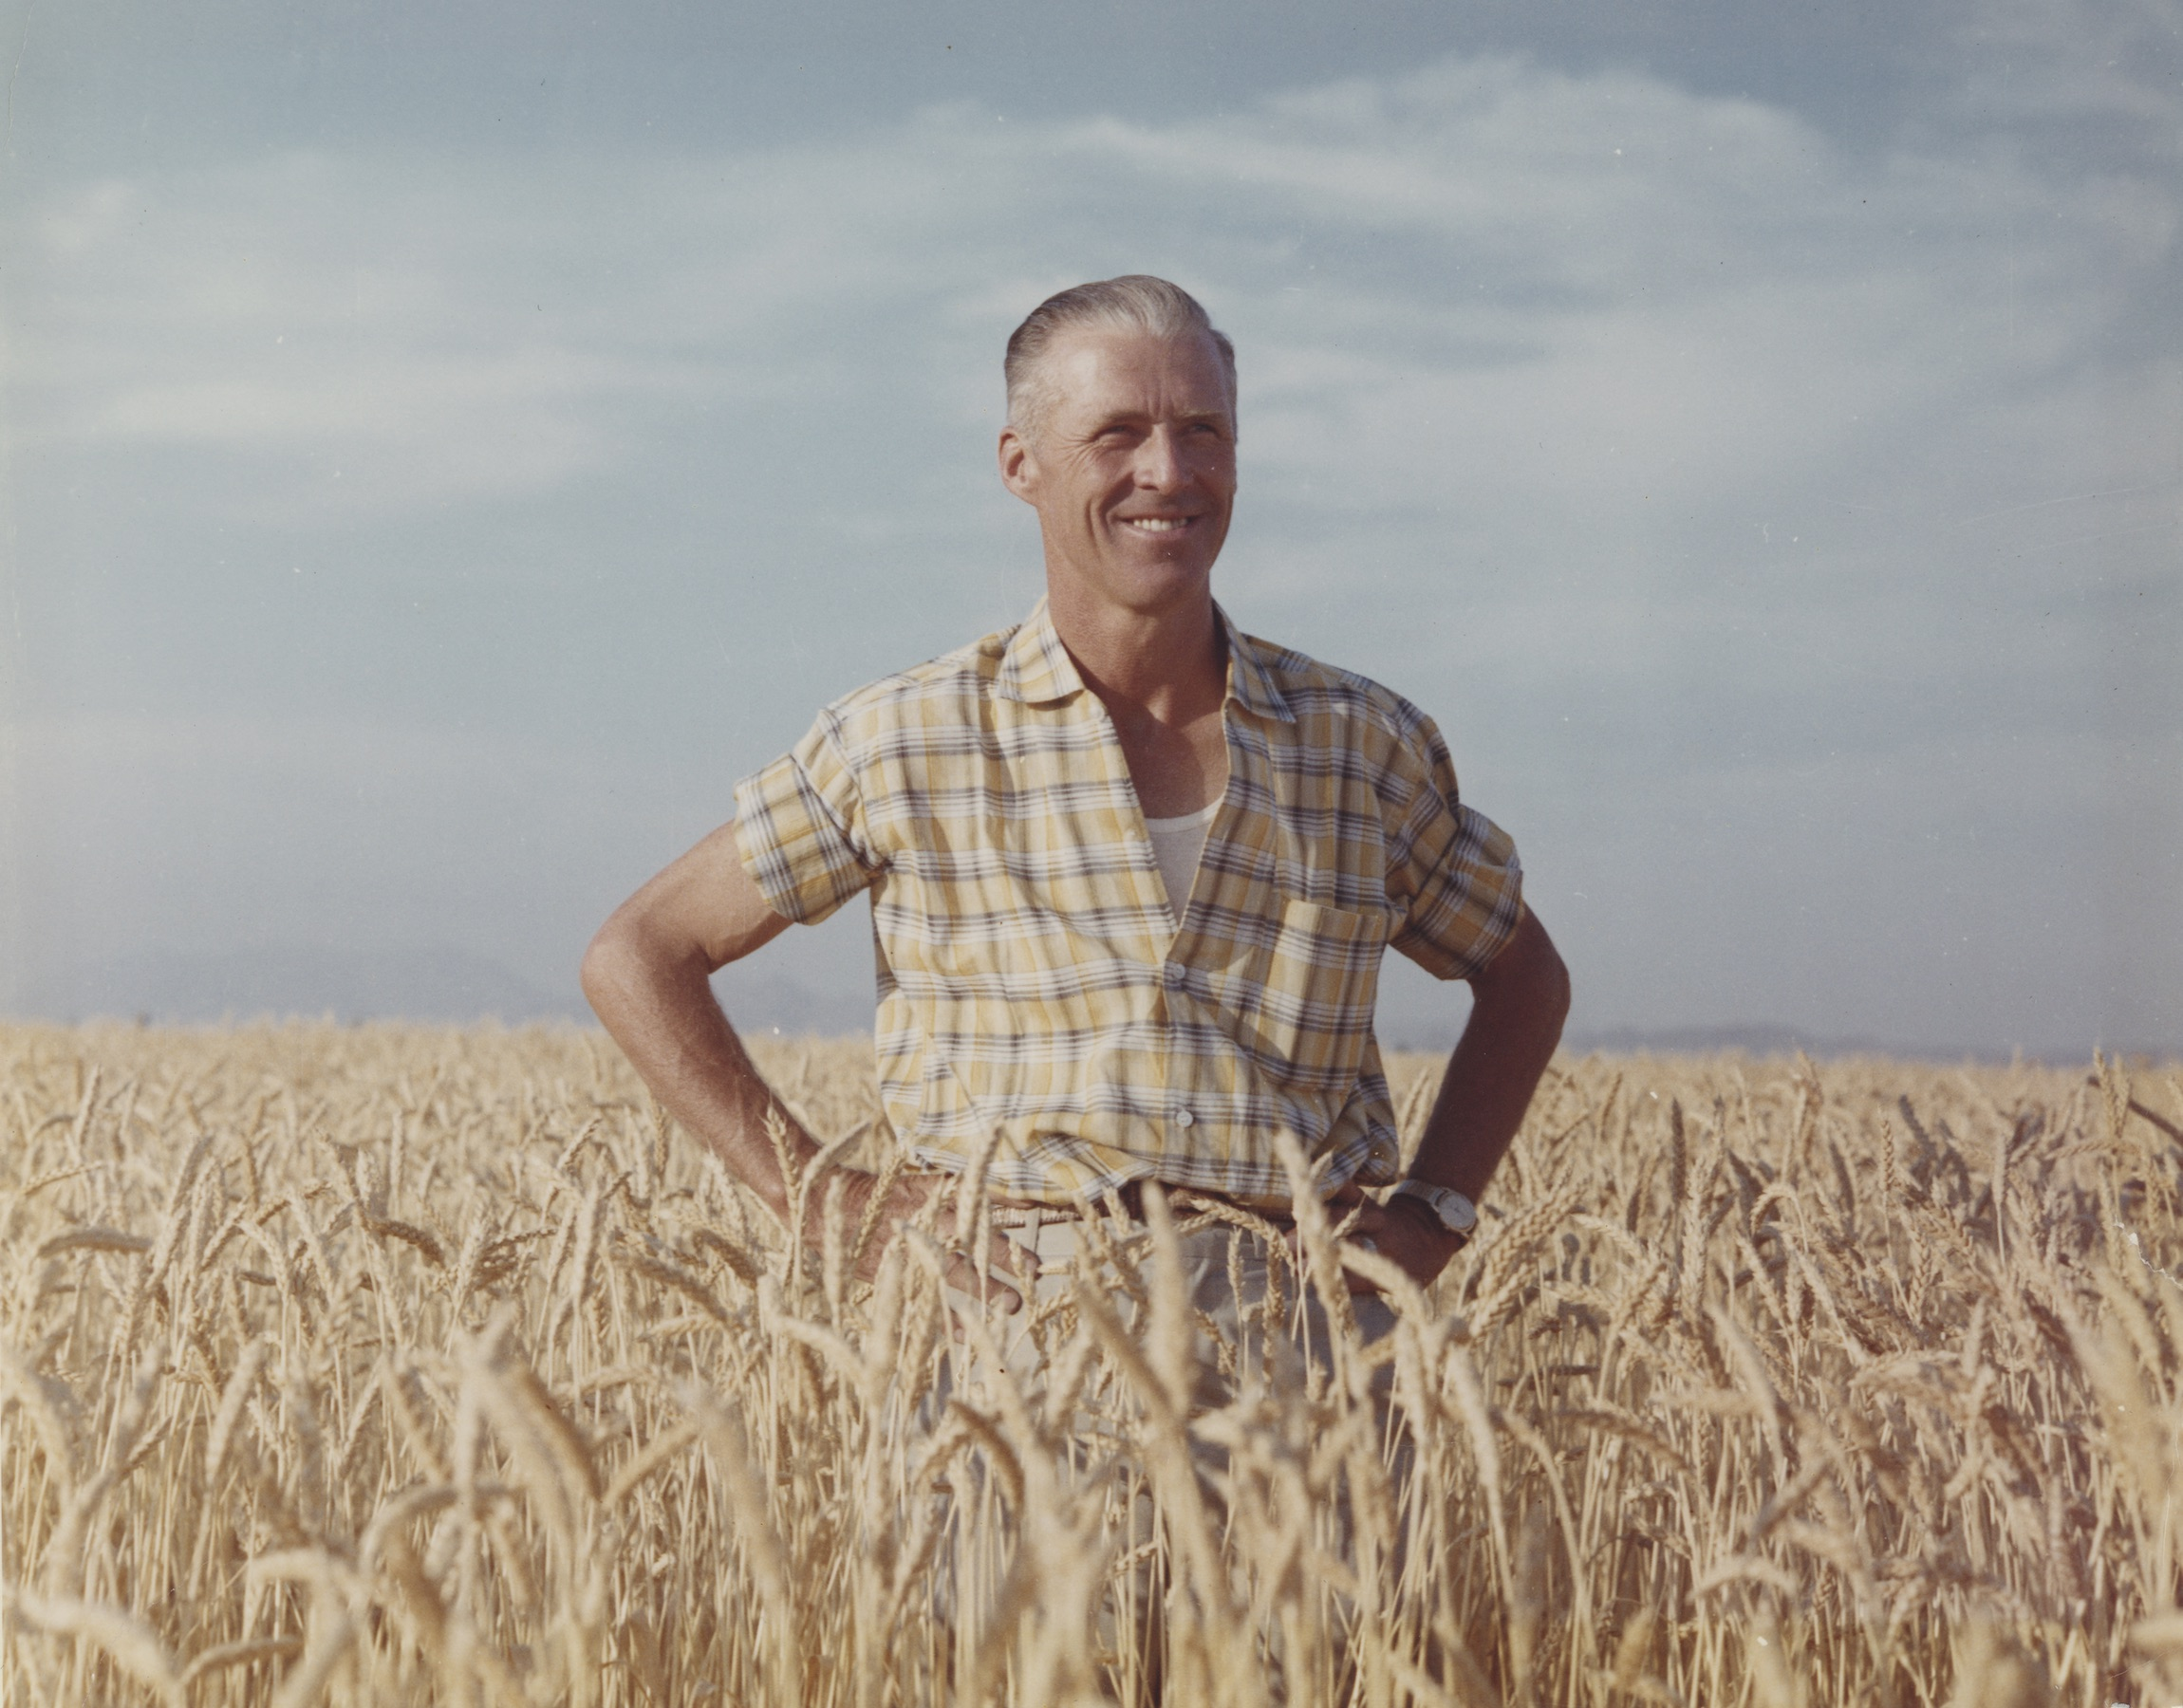 Norman E. Borlaug stands on a wheat field in Ciudad Obregón, Sonora state, Mexico. (Photo: CIMMYT)